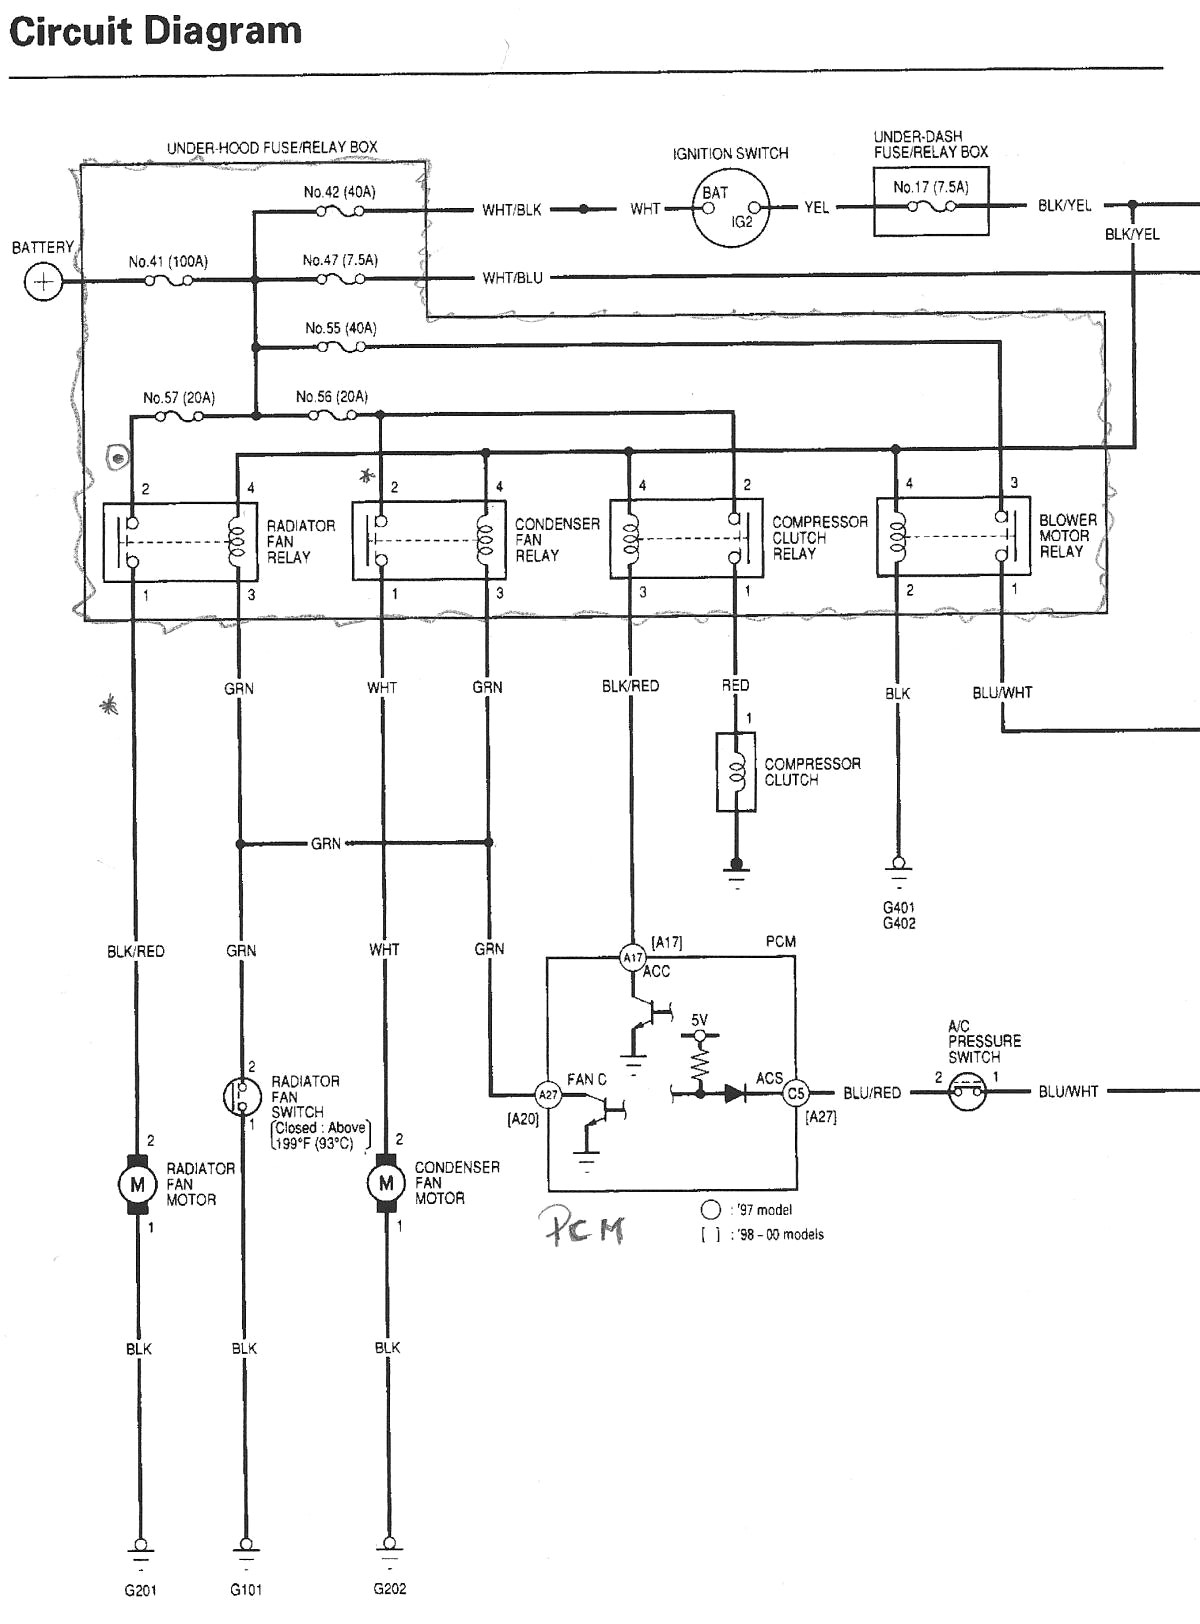 2003 Honda Odyssey Engine Diagram 2003 Honda Accord Stereo Wiring Diagram  and Adorable Blurts Of 2003